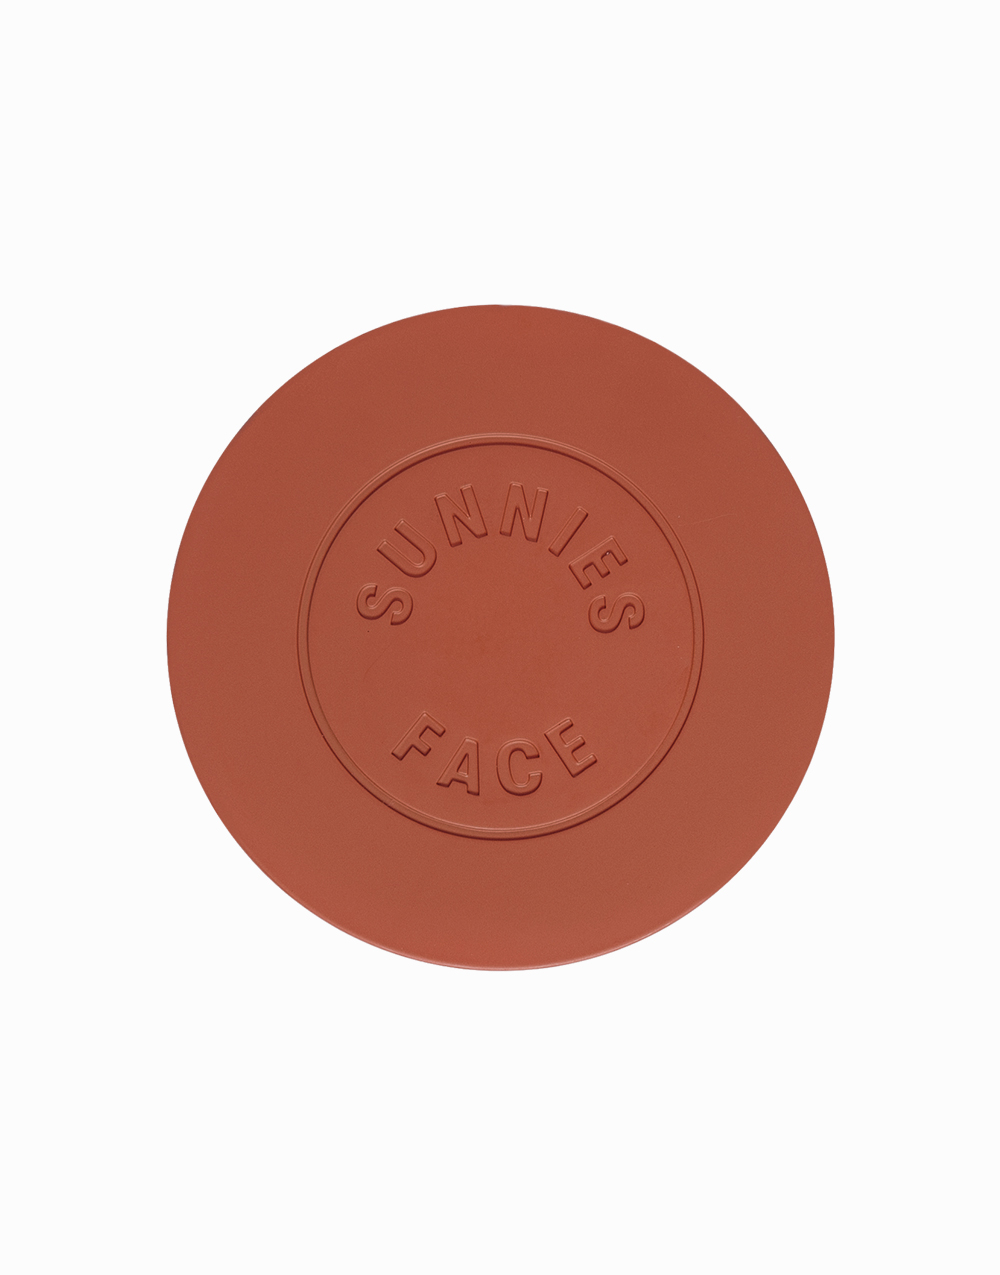 Sunnies Face Airblush [Cream Blush & Cheek Tint] (Biscuit) by Sunnies Face | Biscuit